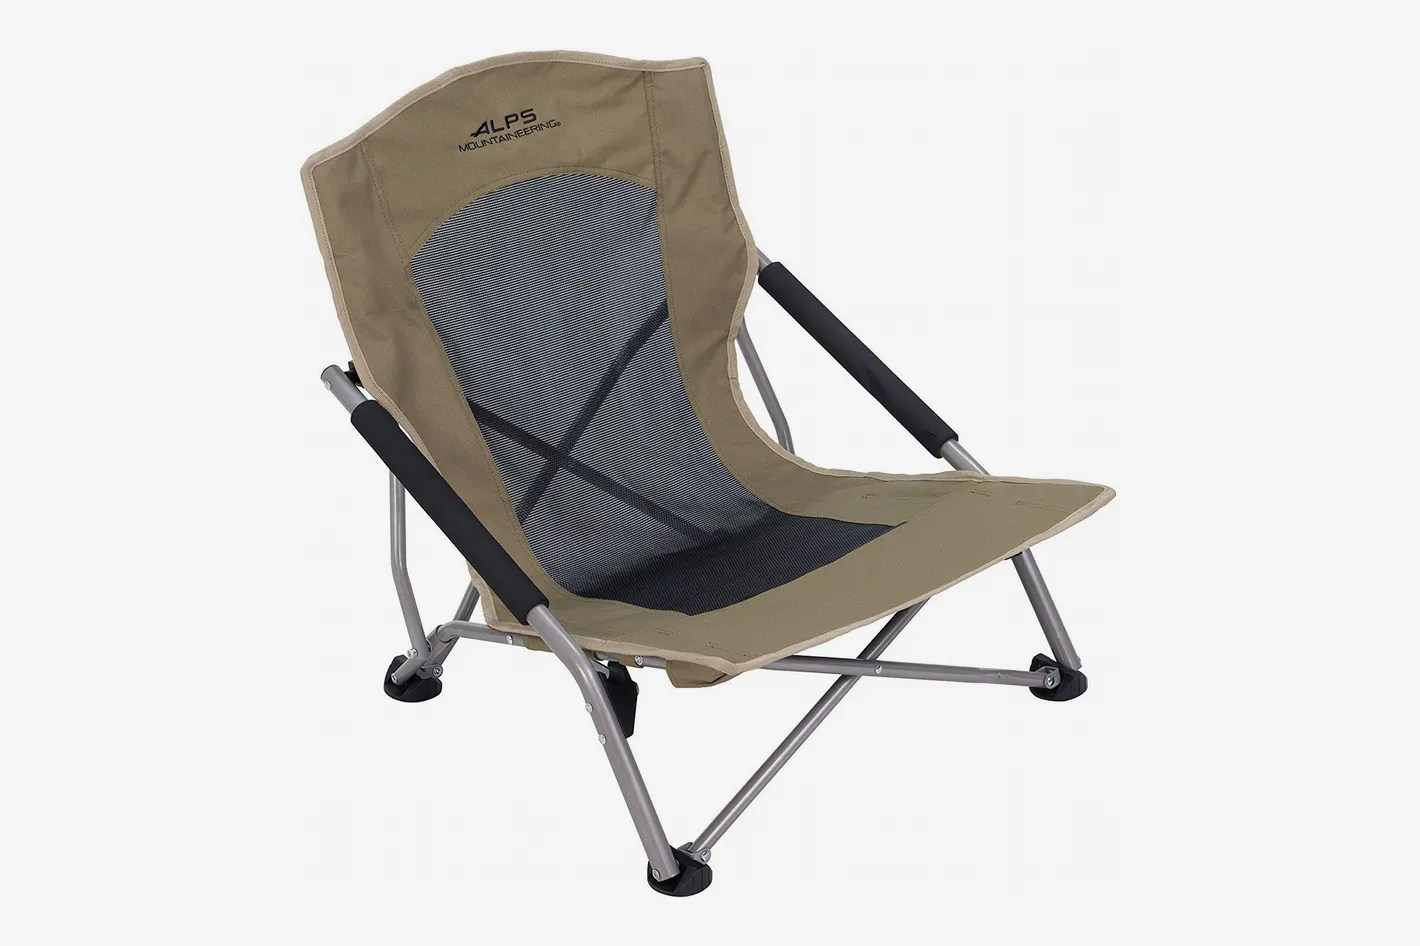 Small Camping Chair 21 Best Beach Chairs 2019